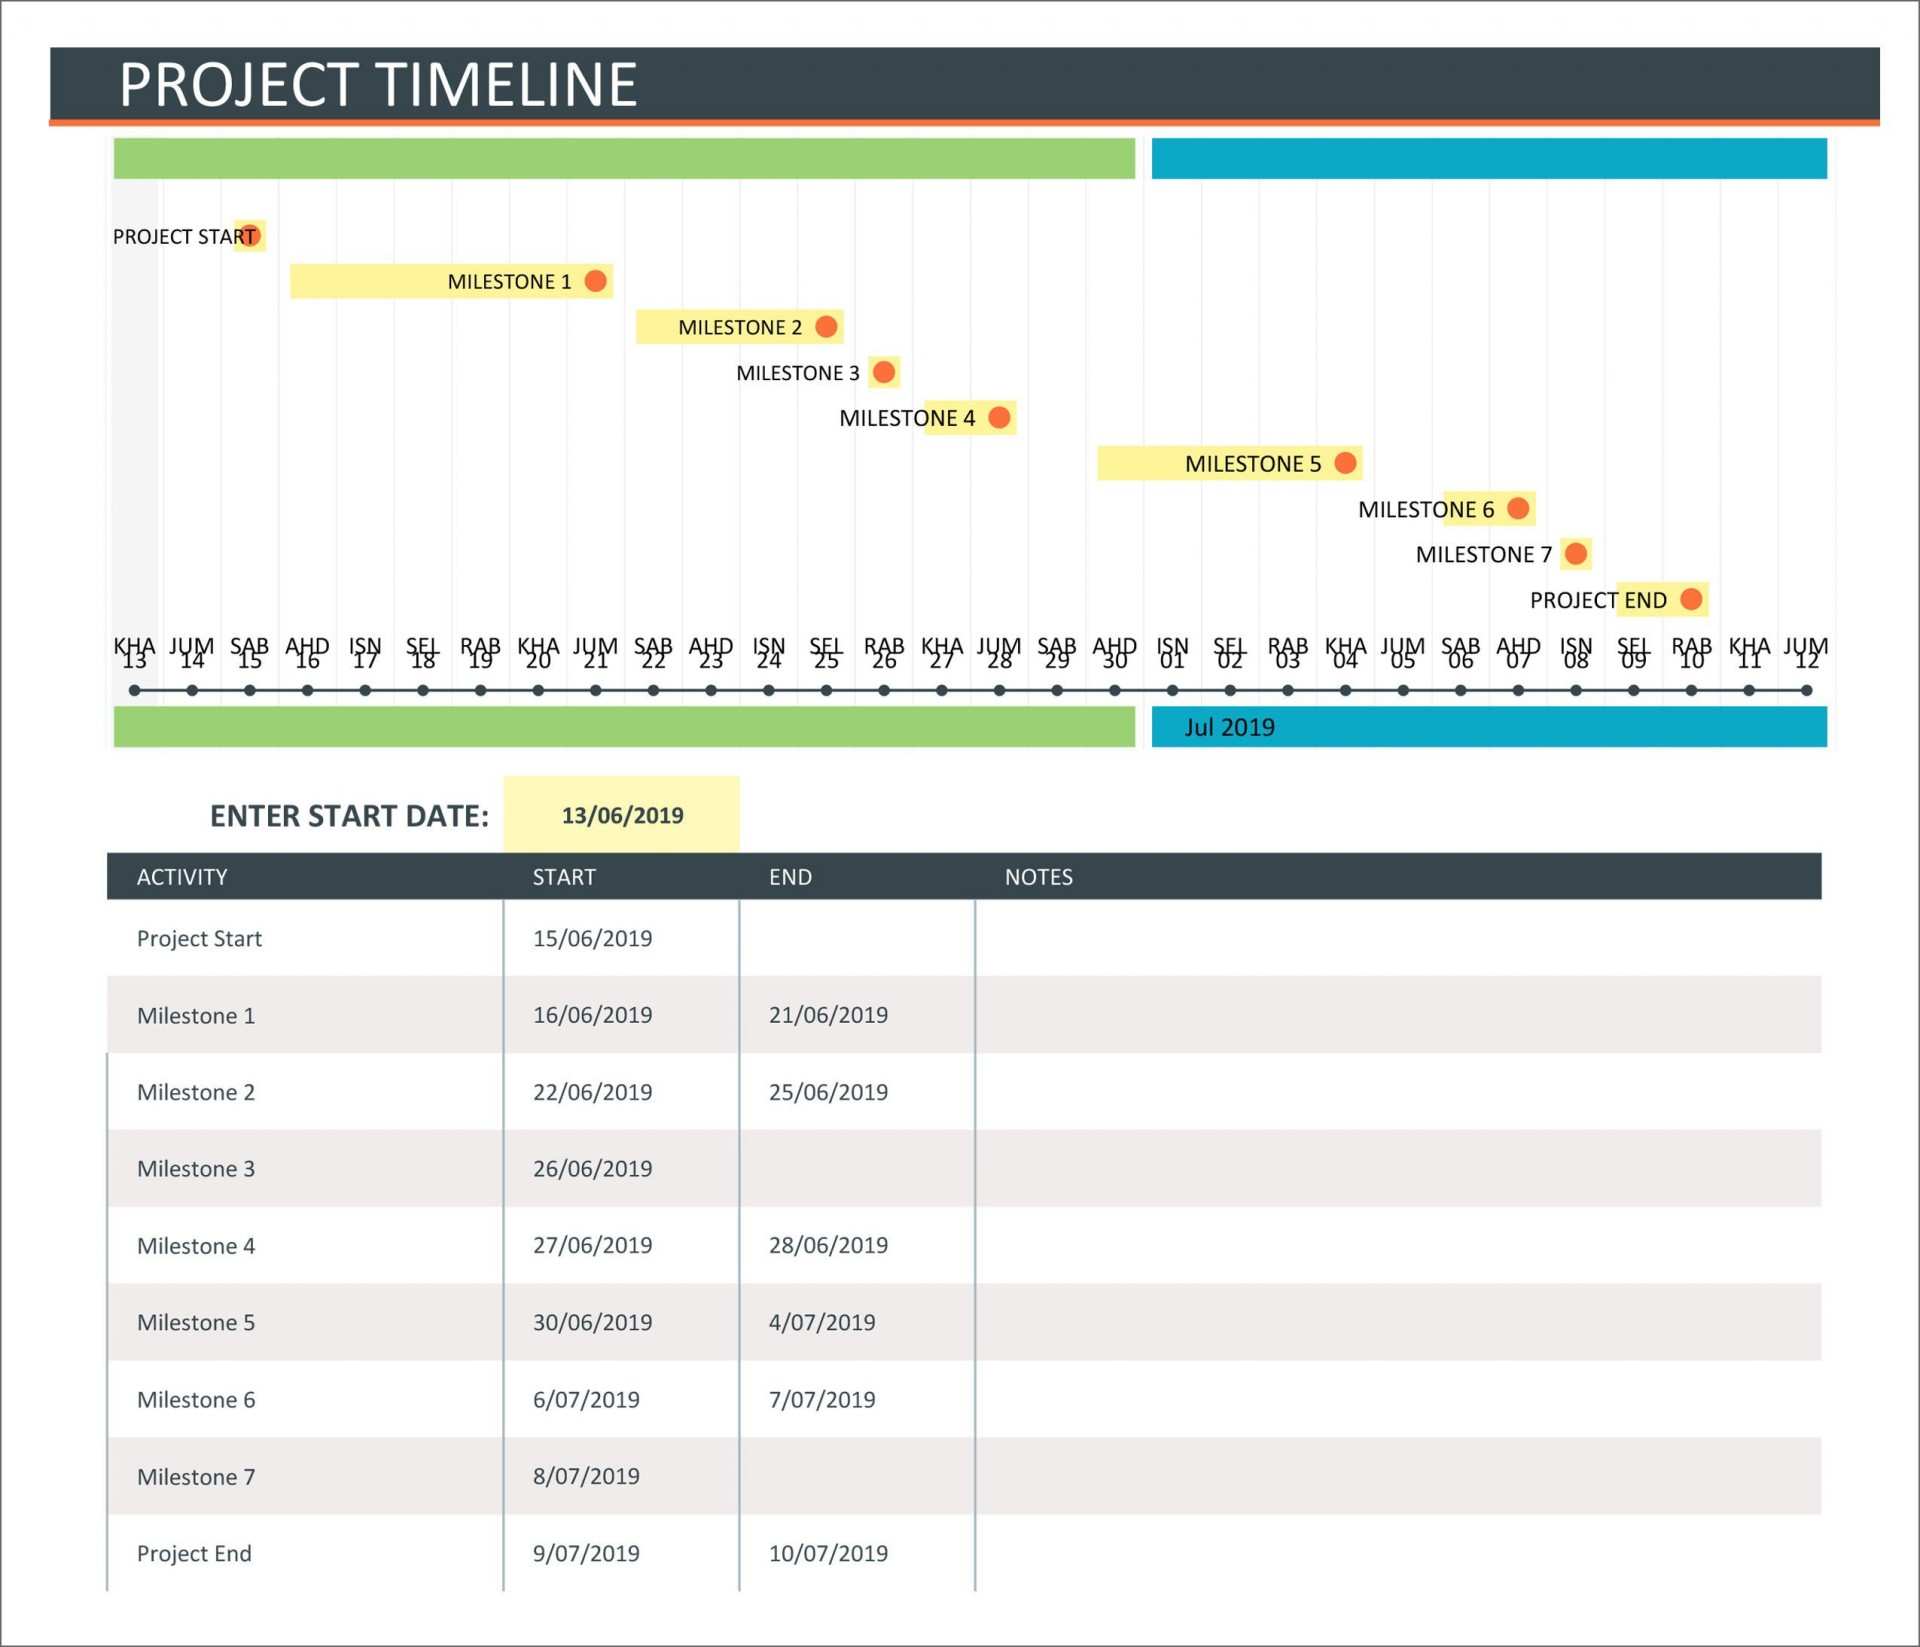 004 Staggering Project Management Timeline Template Excel High Resolution  Free1920